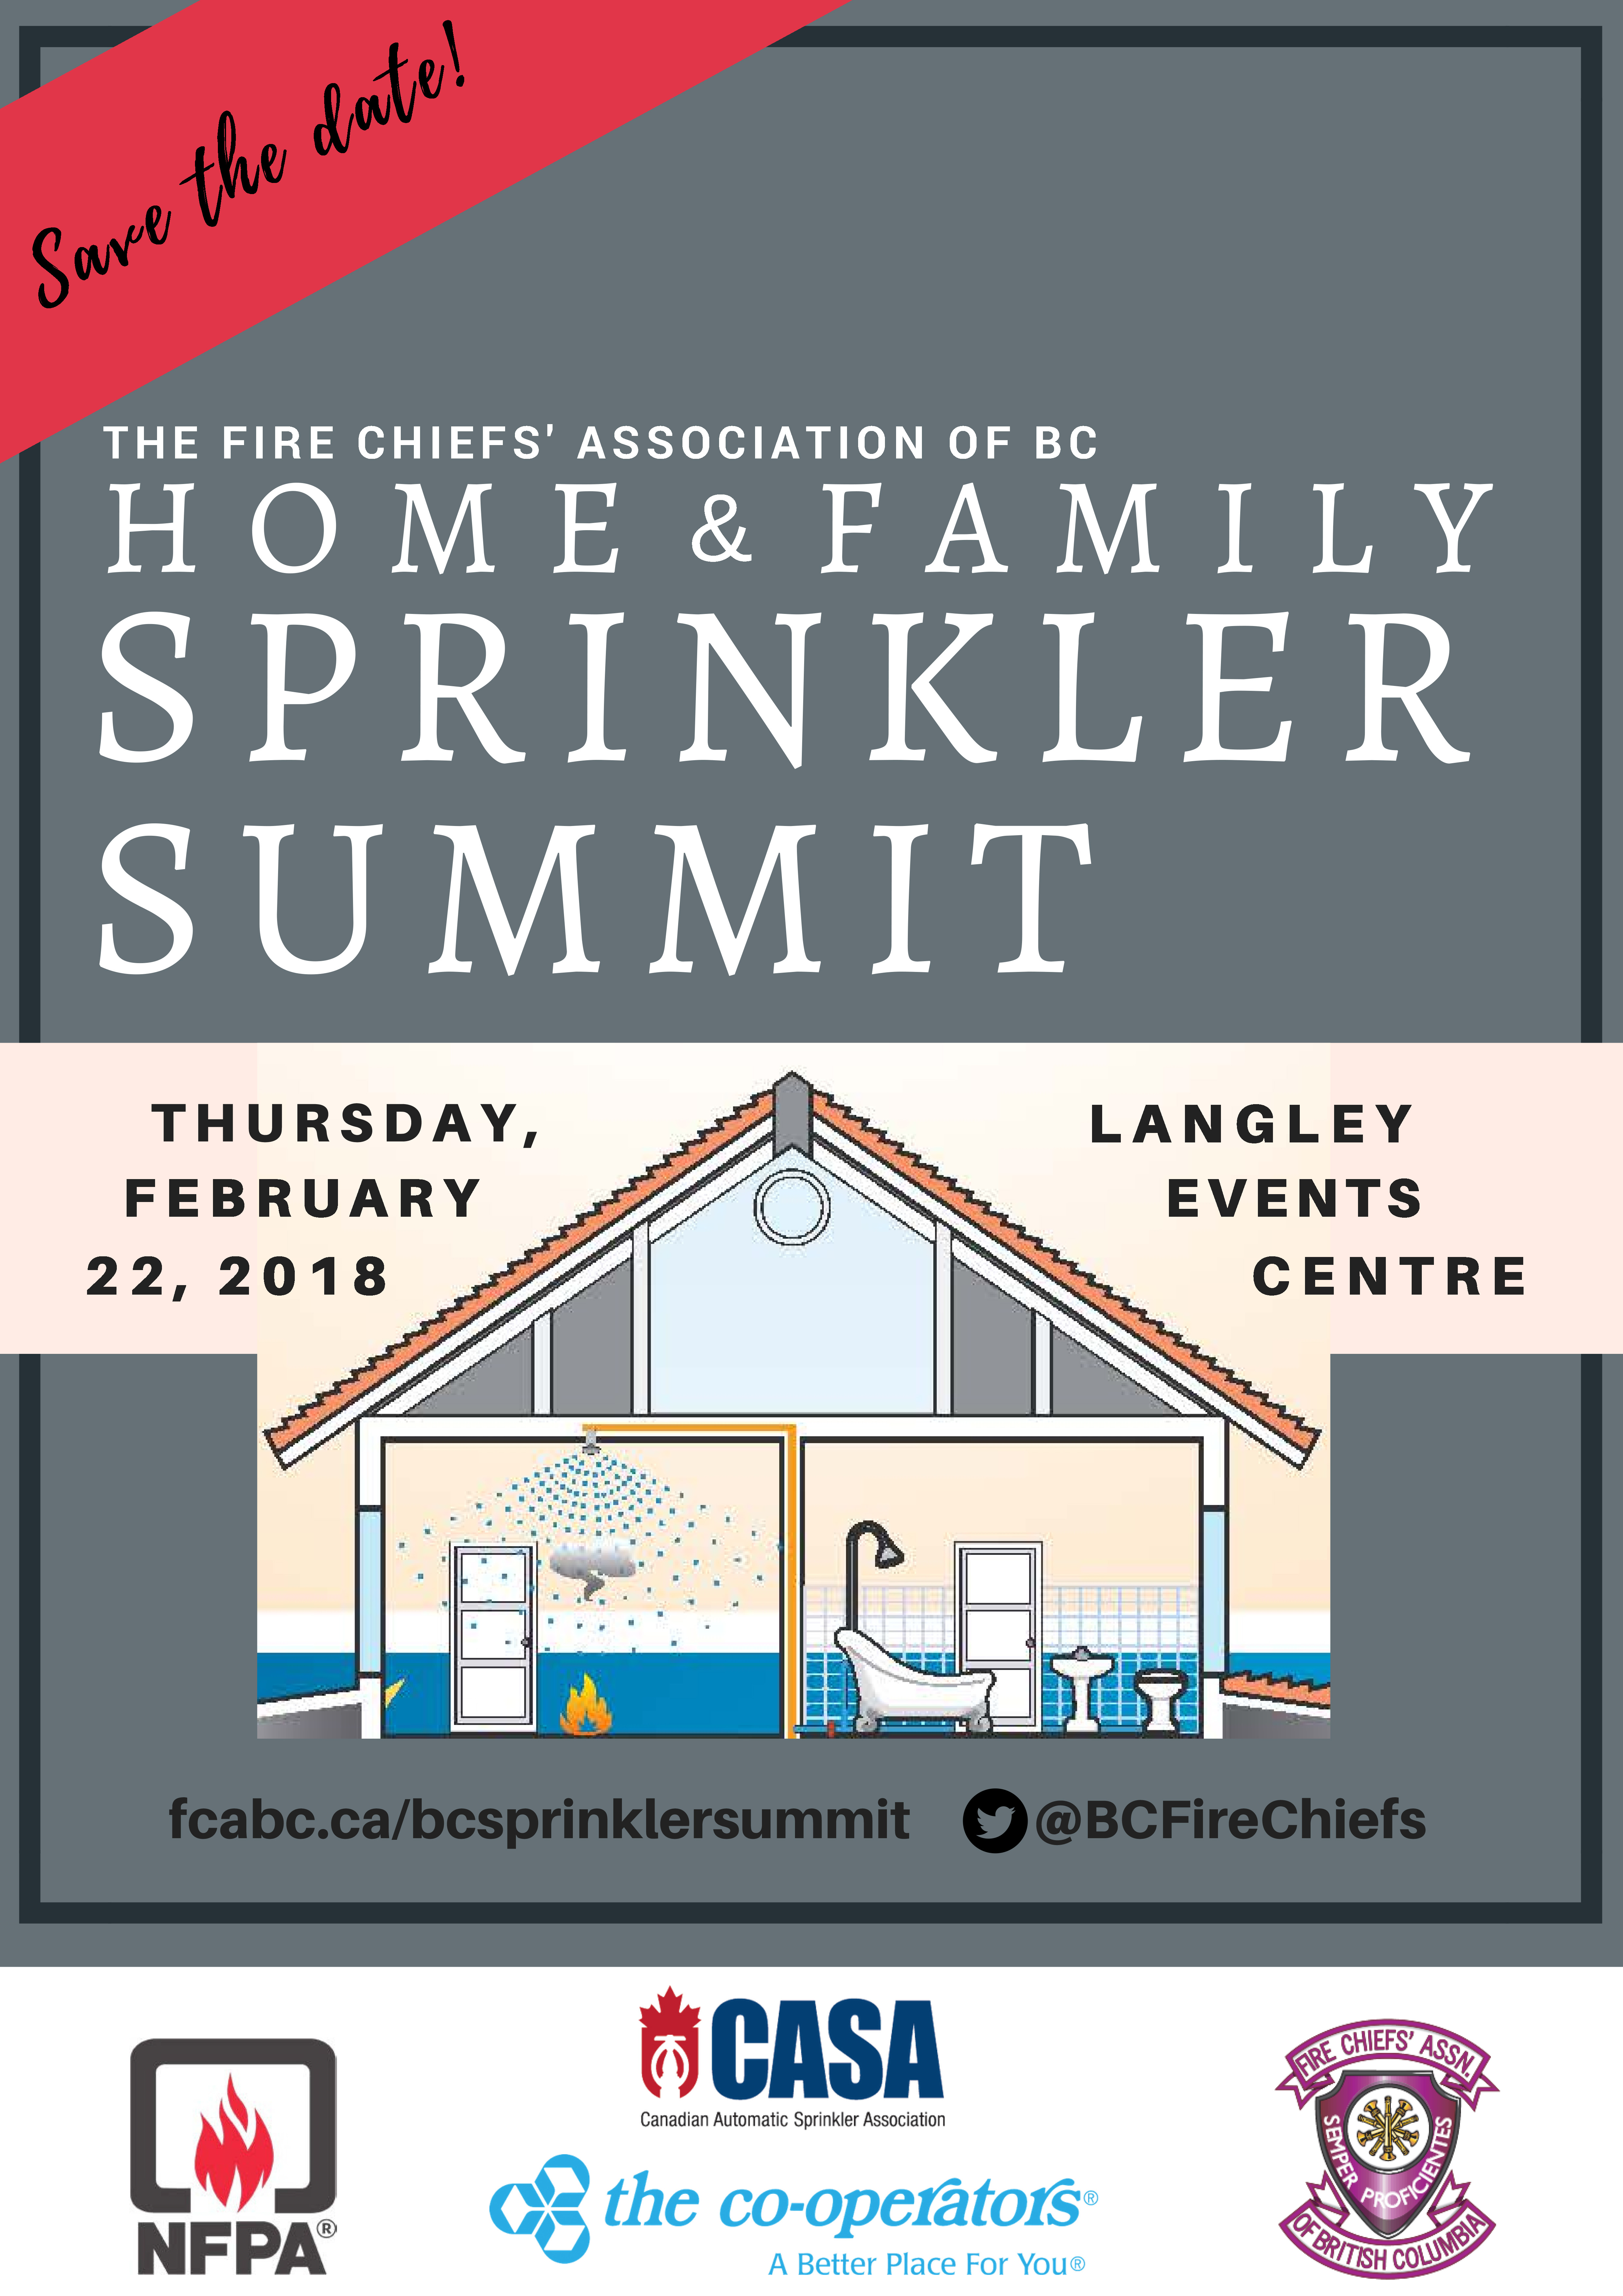 British Columbia sprinkler summit